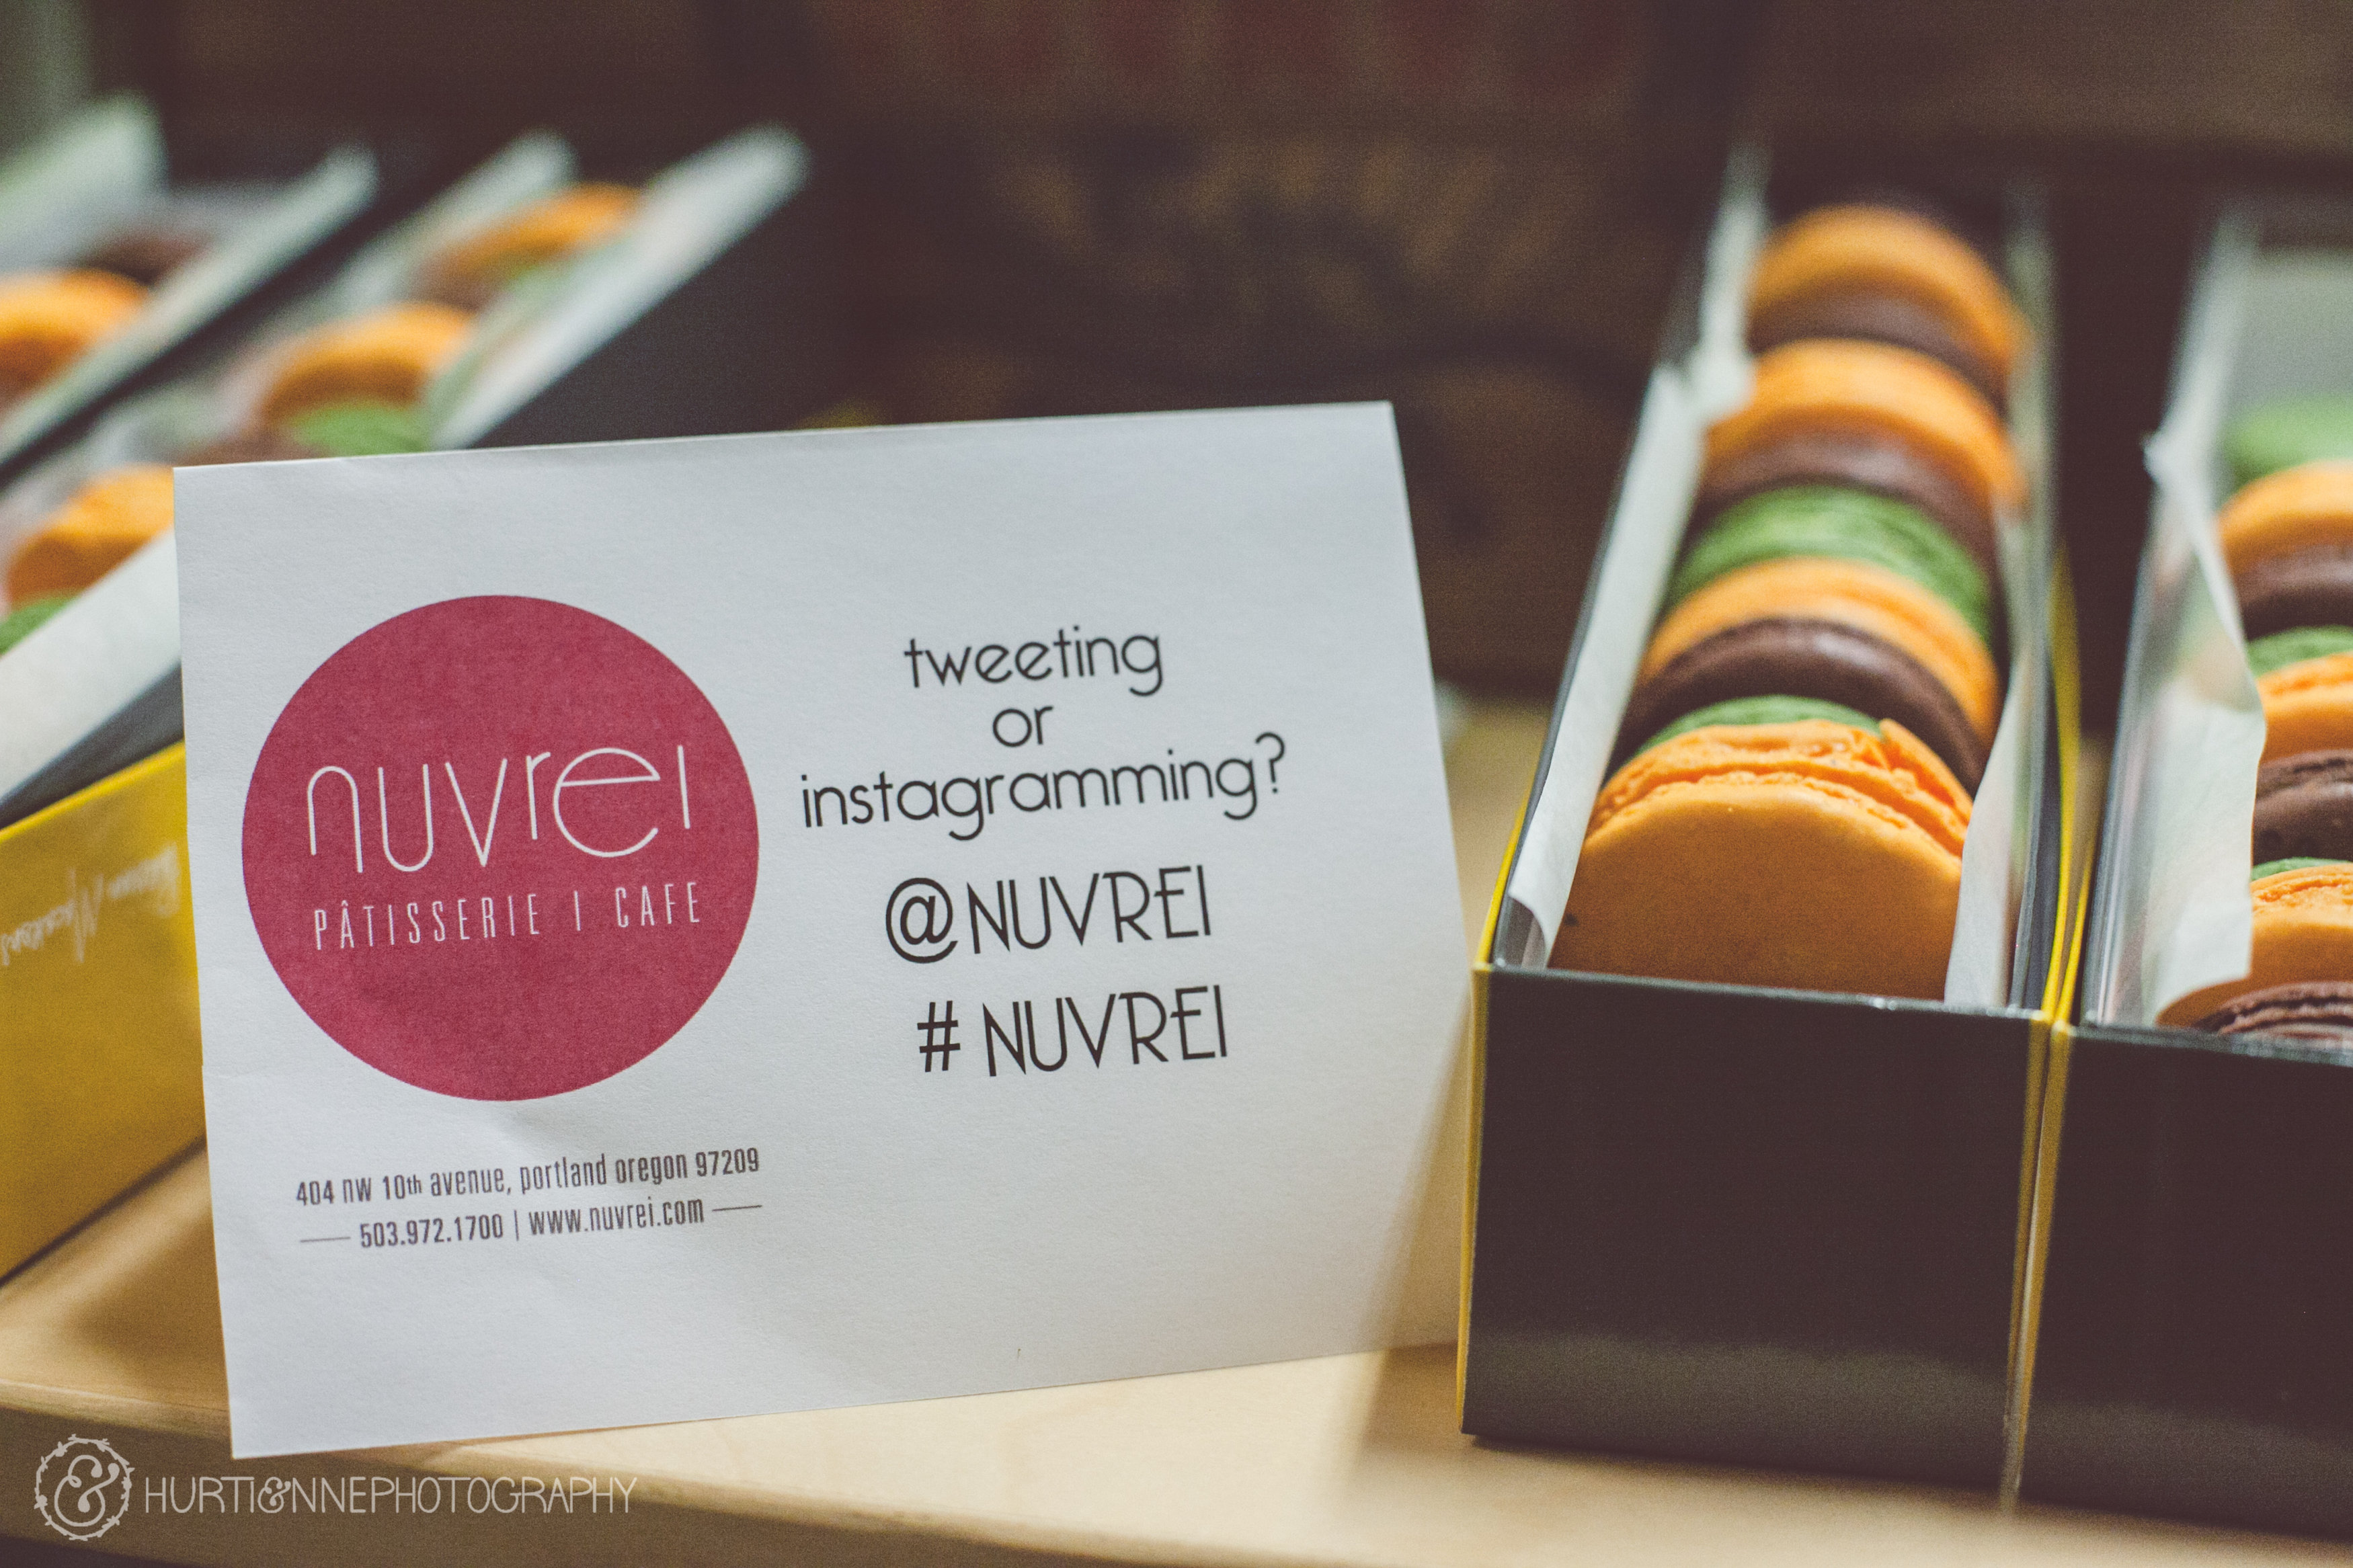 Nuvrei Patisserie & Cafe